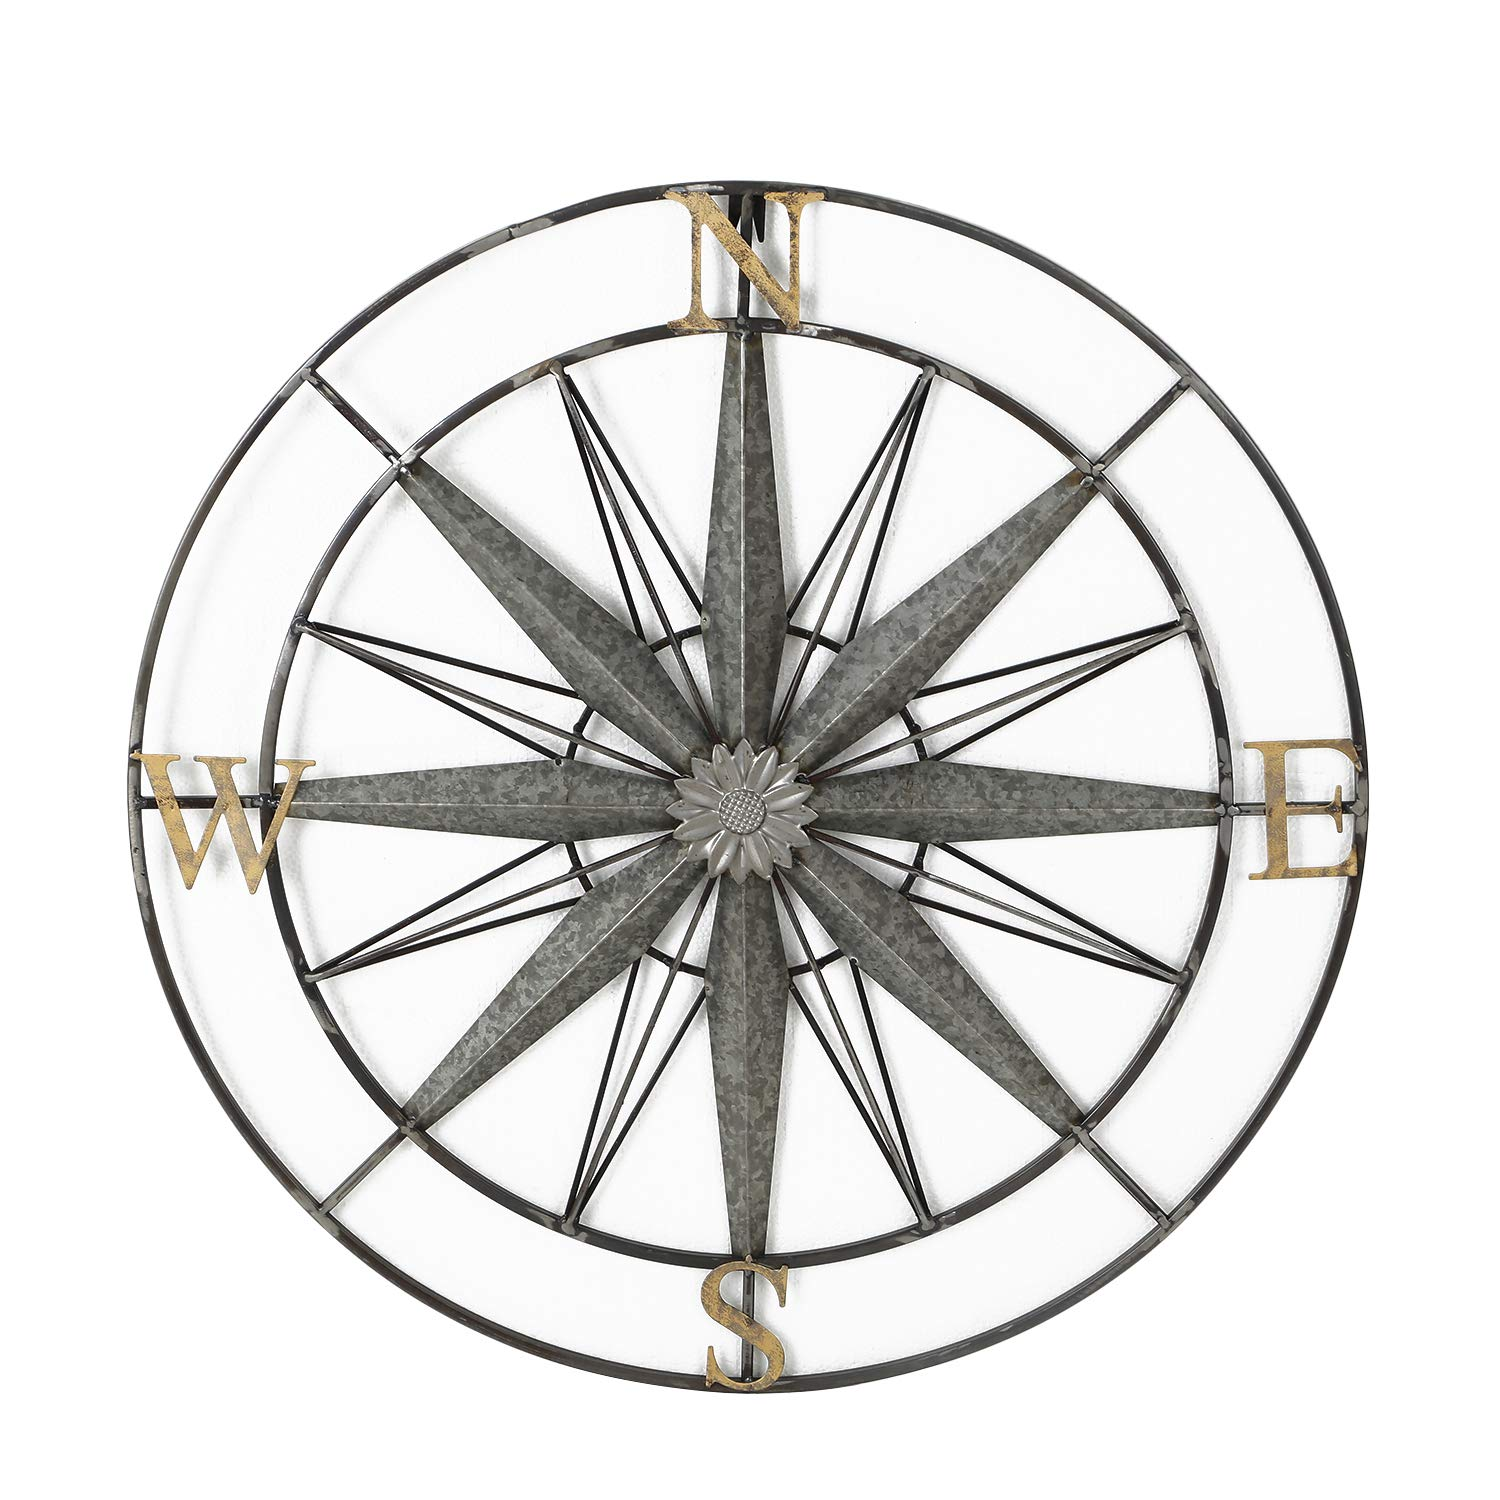 Adeco Decorative Compass Metal Wall Hanging Art Decor for Nature Home Art Decoration & Kitchen Holiday Wall Decorations, Christmas Wall Art Gifts - 27.5x27.5 Inches by Adeco